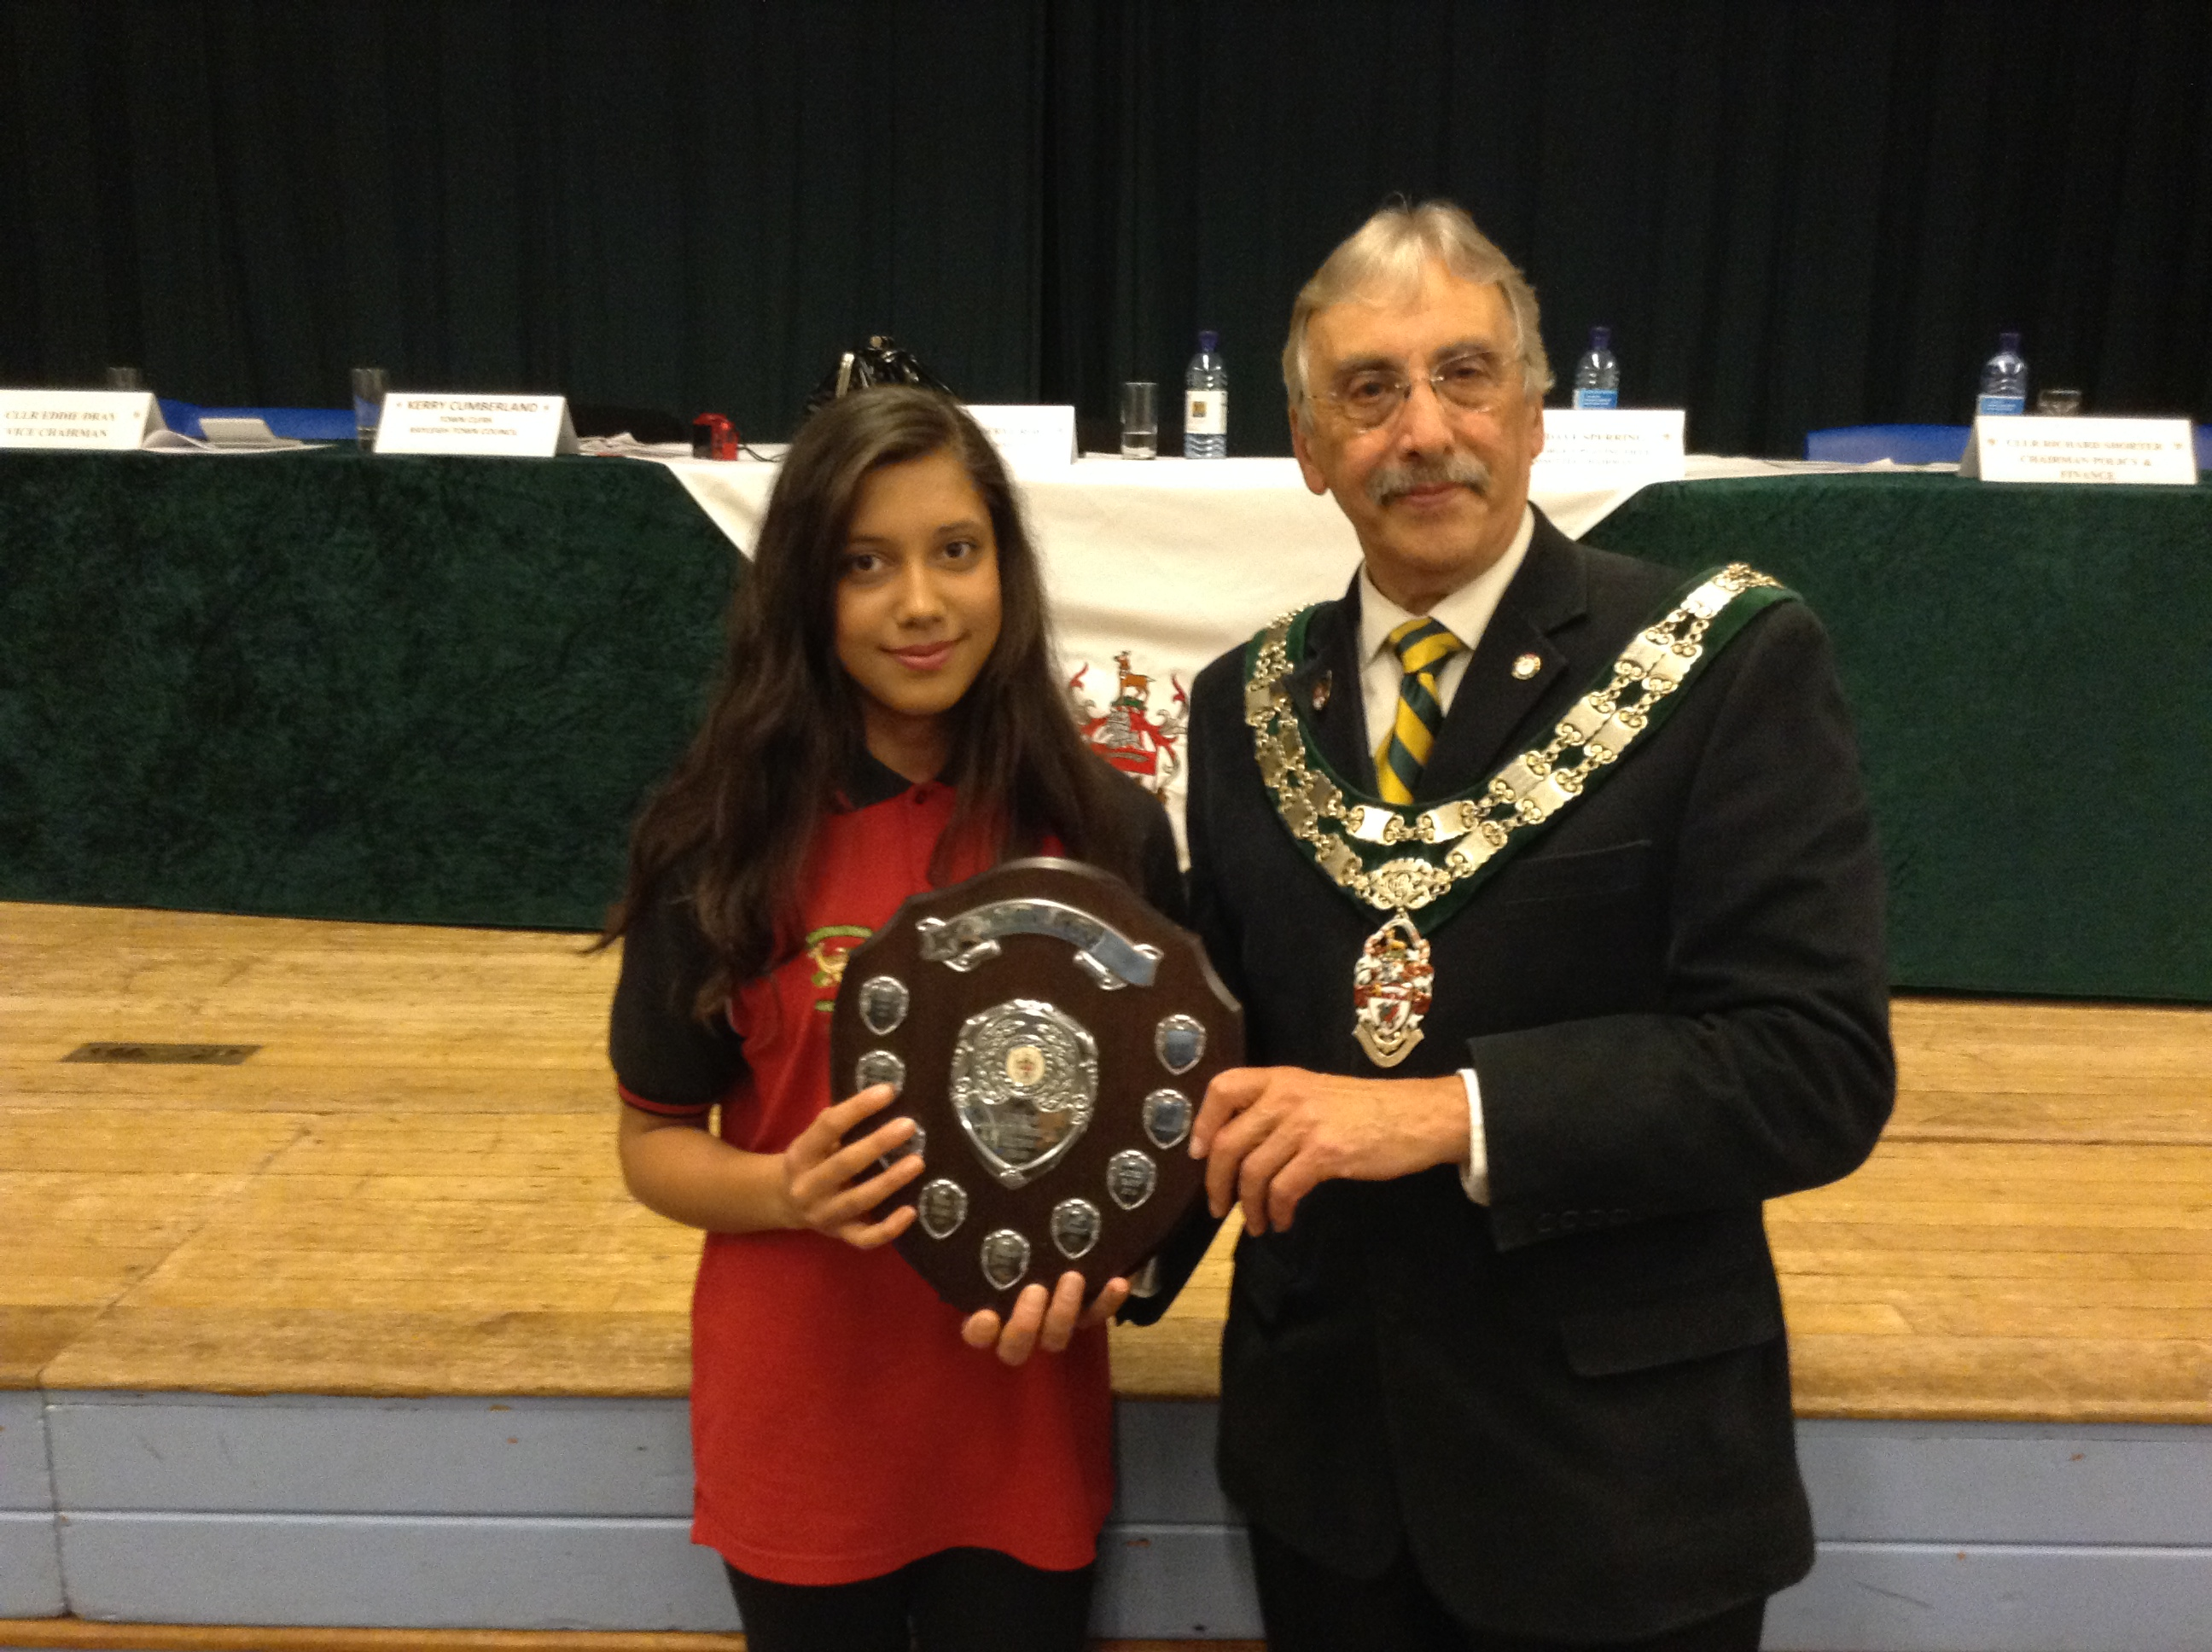 Lauren receives the Rayleigh Town Council Young Sportsperson 2014 award